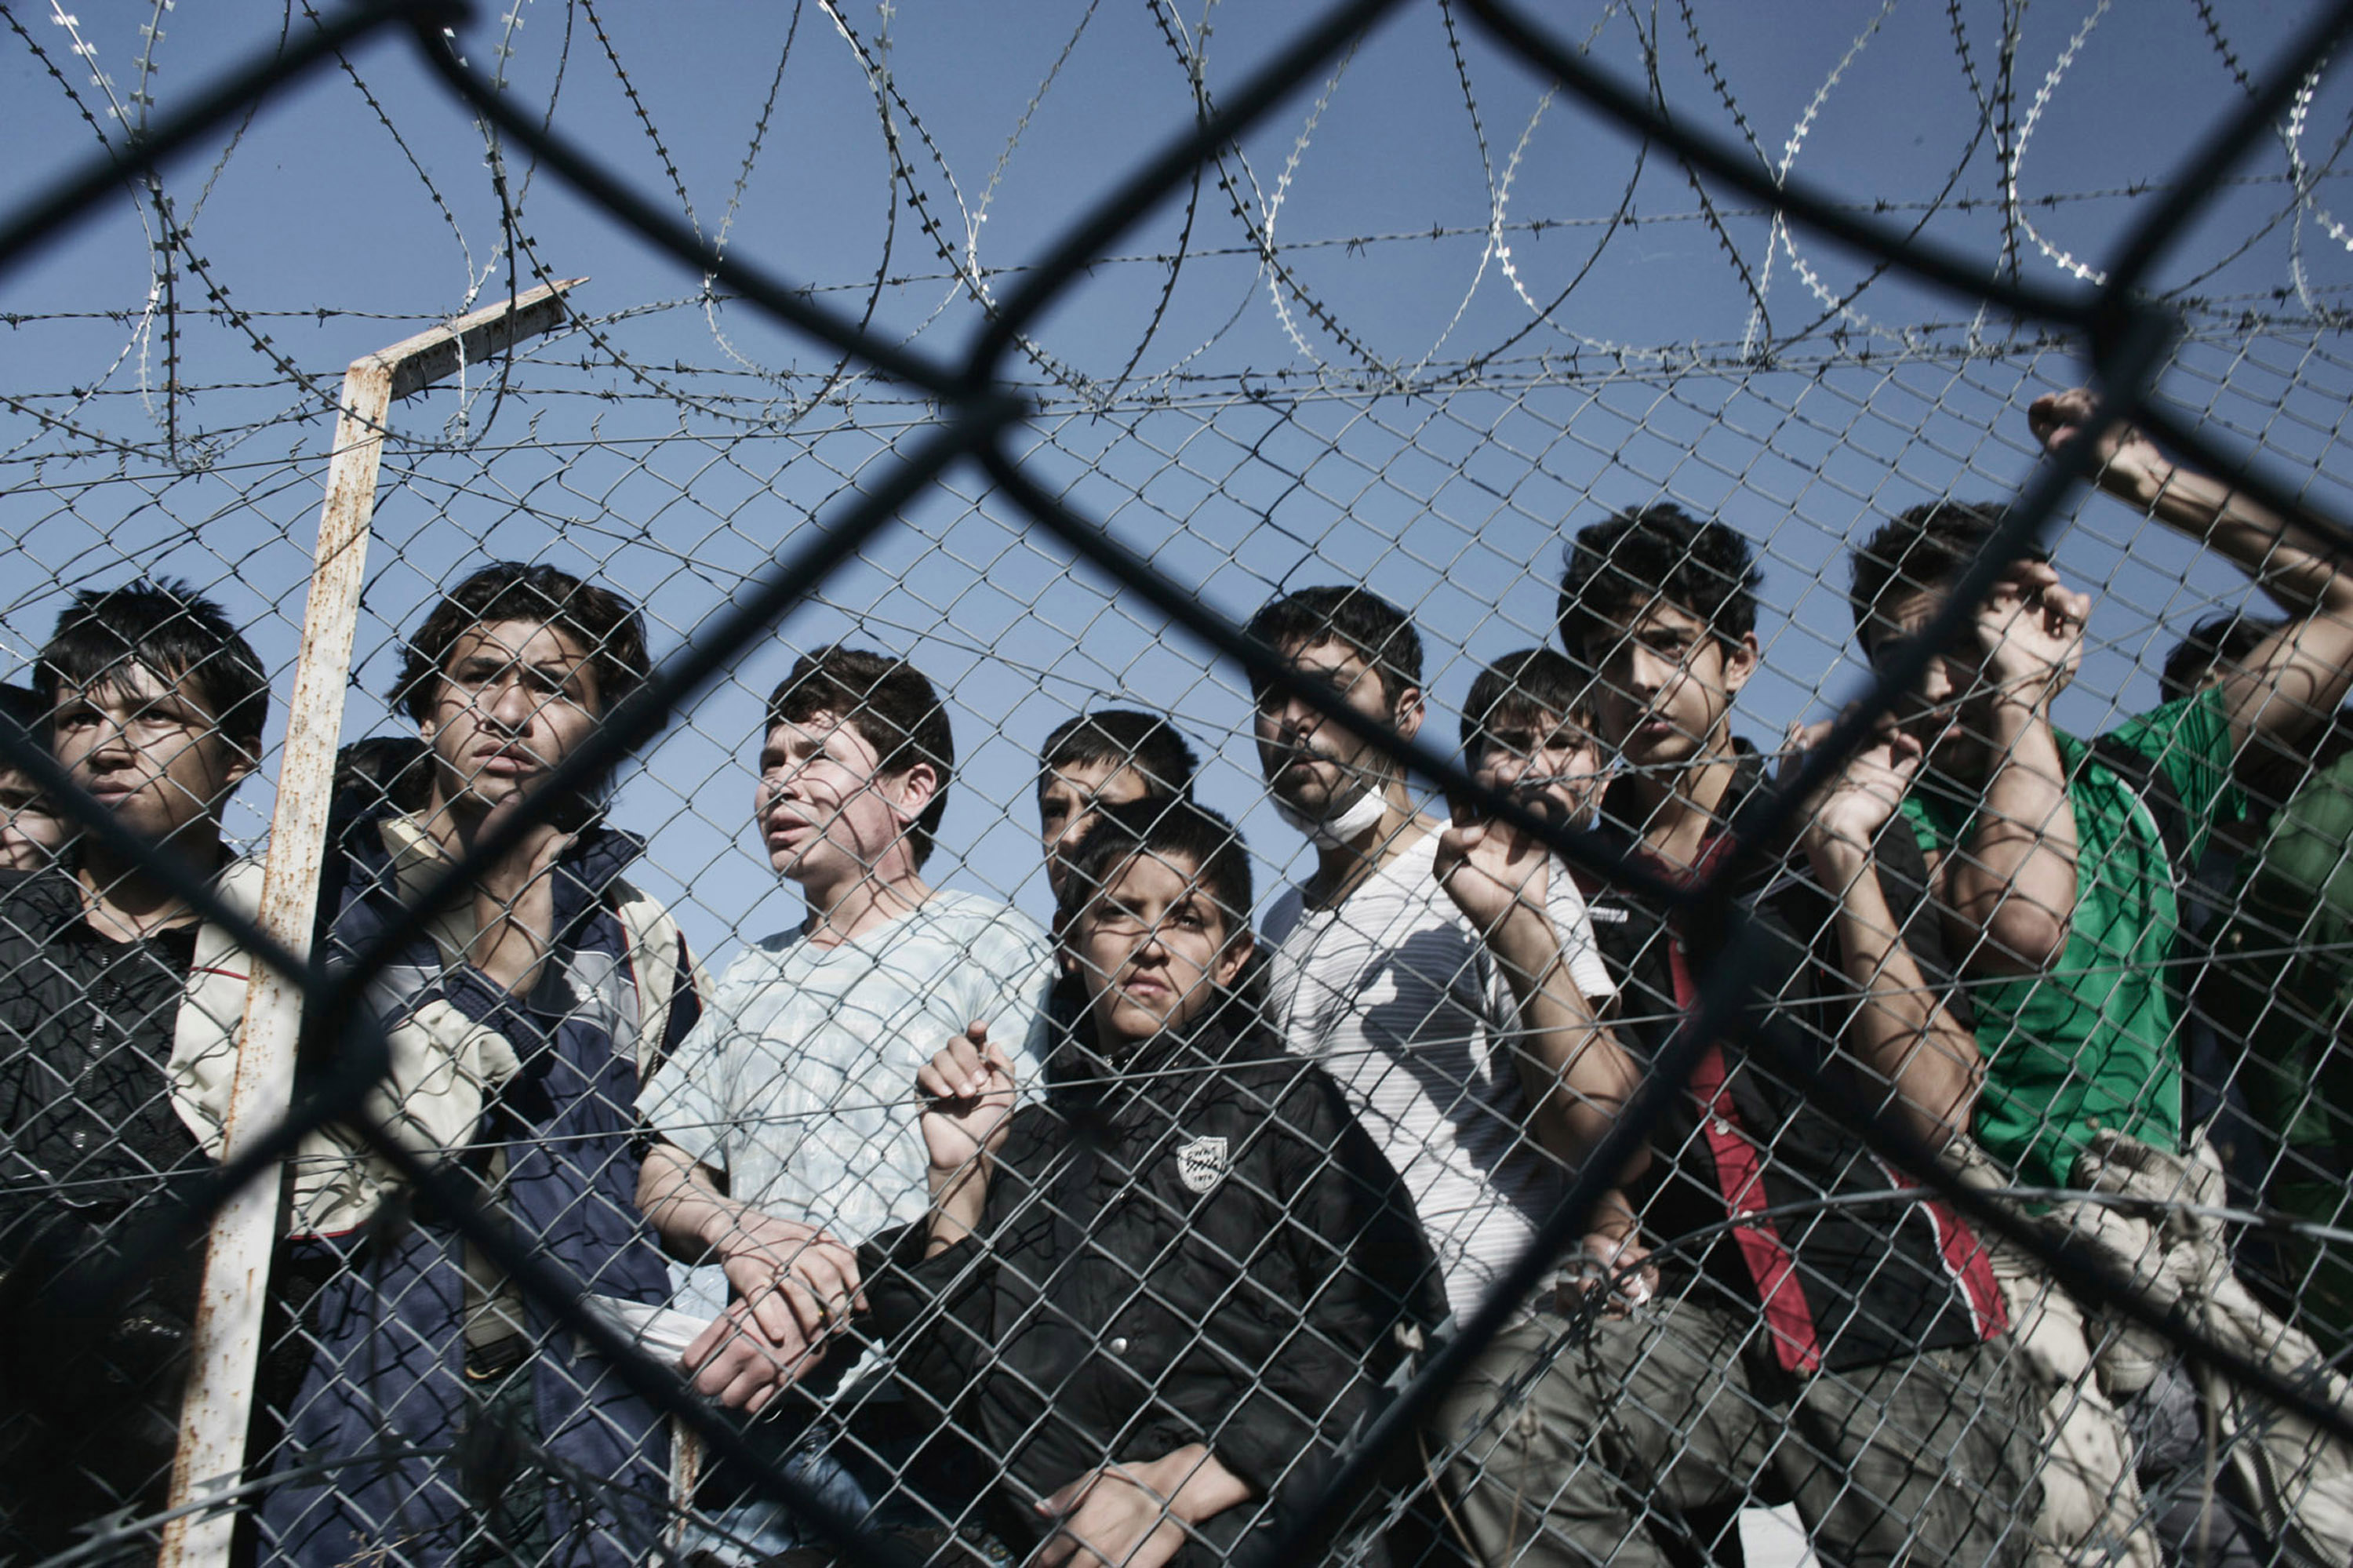 young illegal immigrants standing behind a fence at a detention center, in the Greek village of Filakio near the Greek-Turkish border.